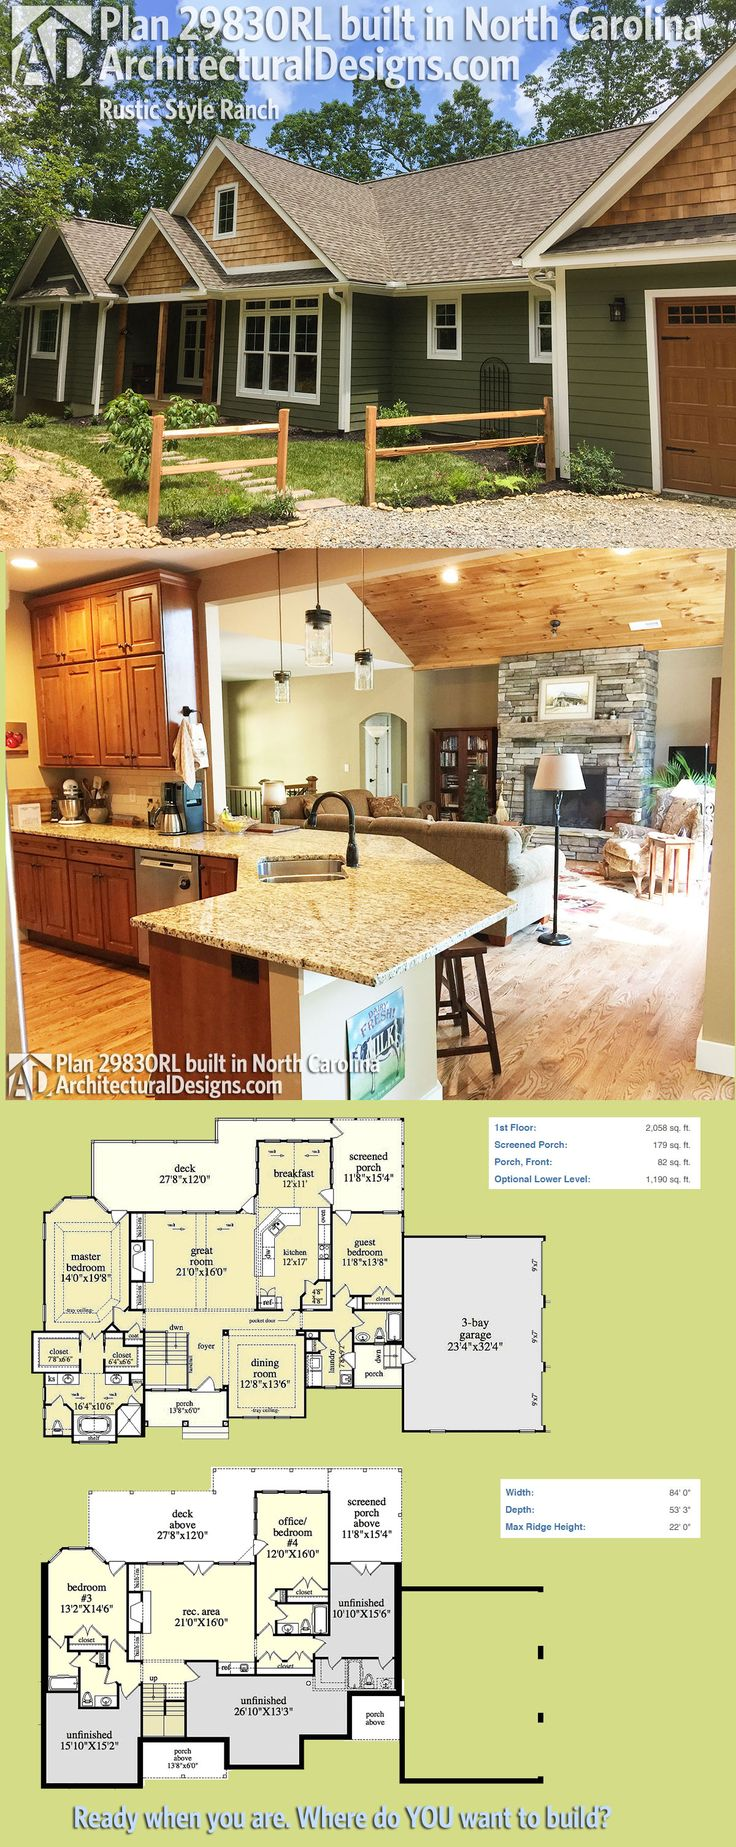 Architectural Designs Rustic Ranch House Plan 29830RL